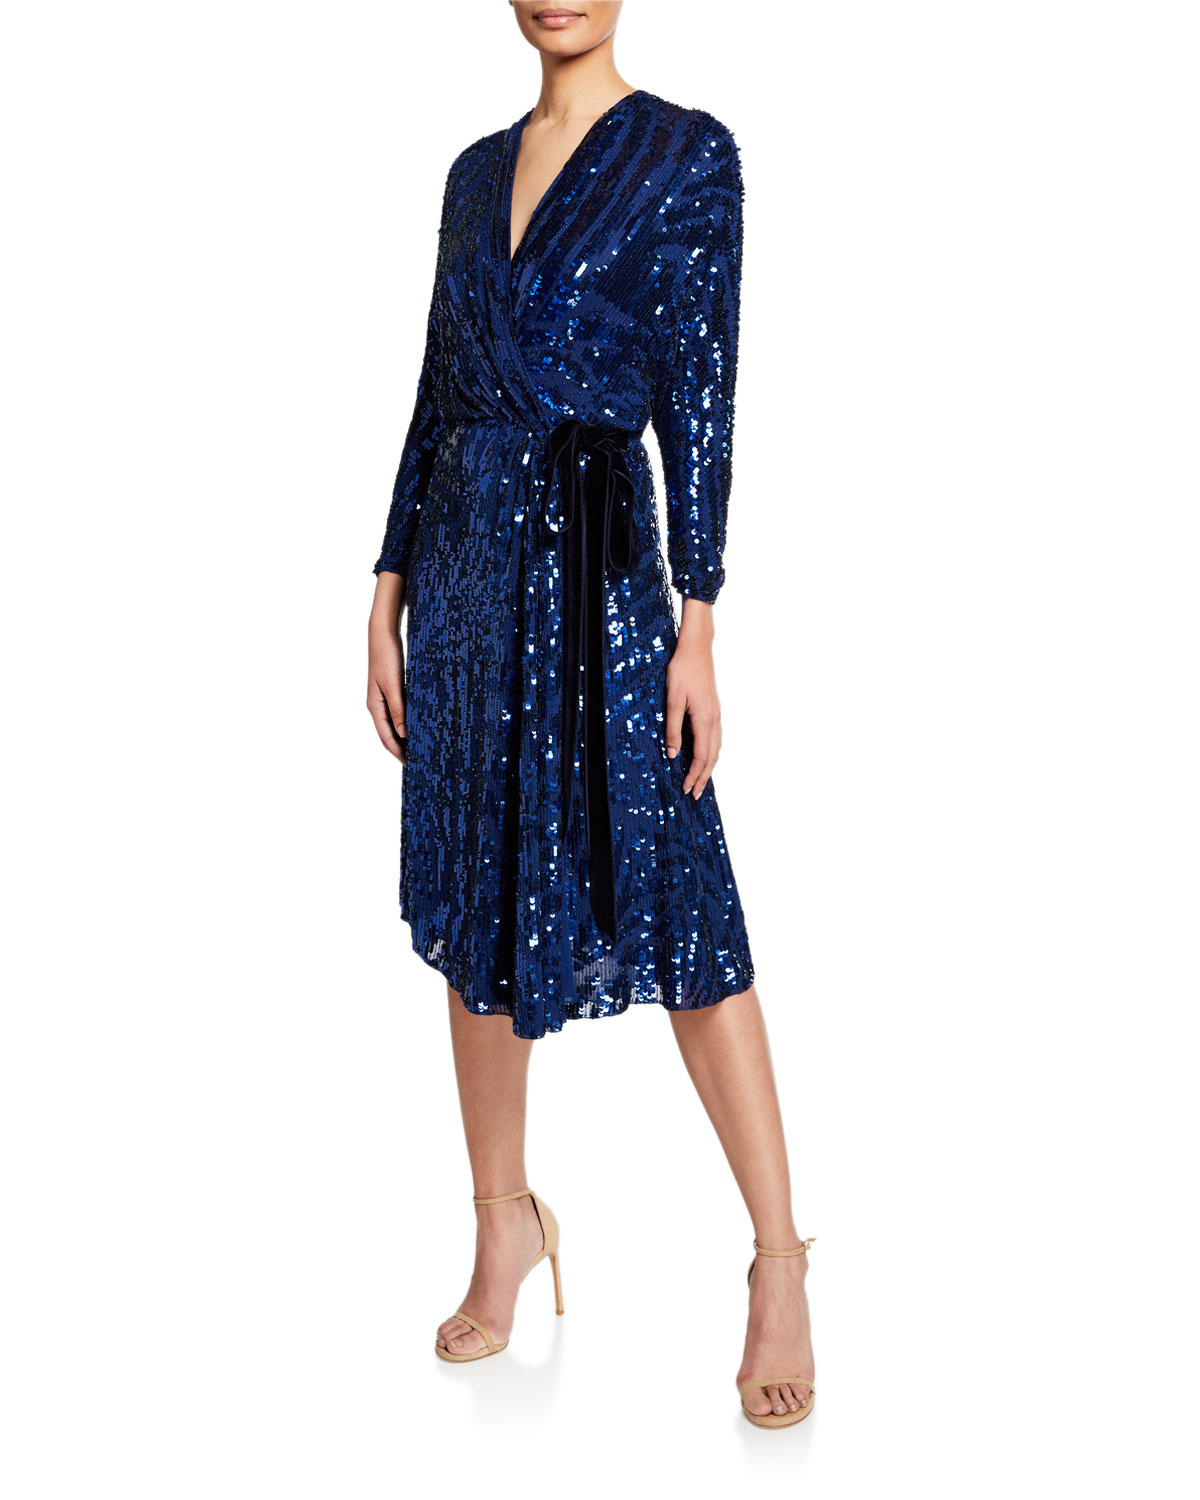 Jenny Packham Long-Sleeve Wrapped Beaded Cocktail Dress In Blue